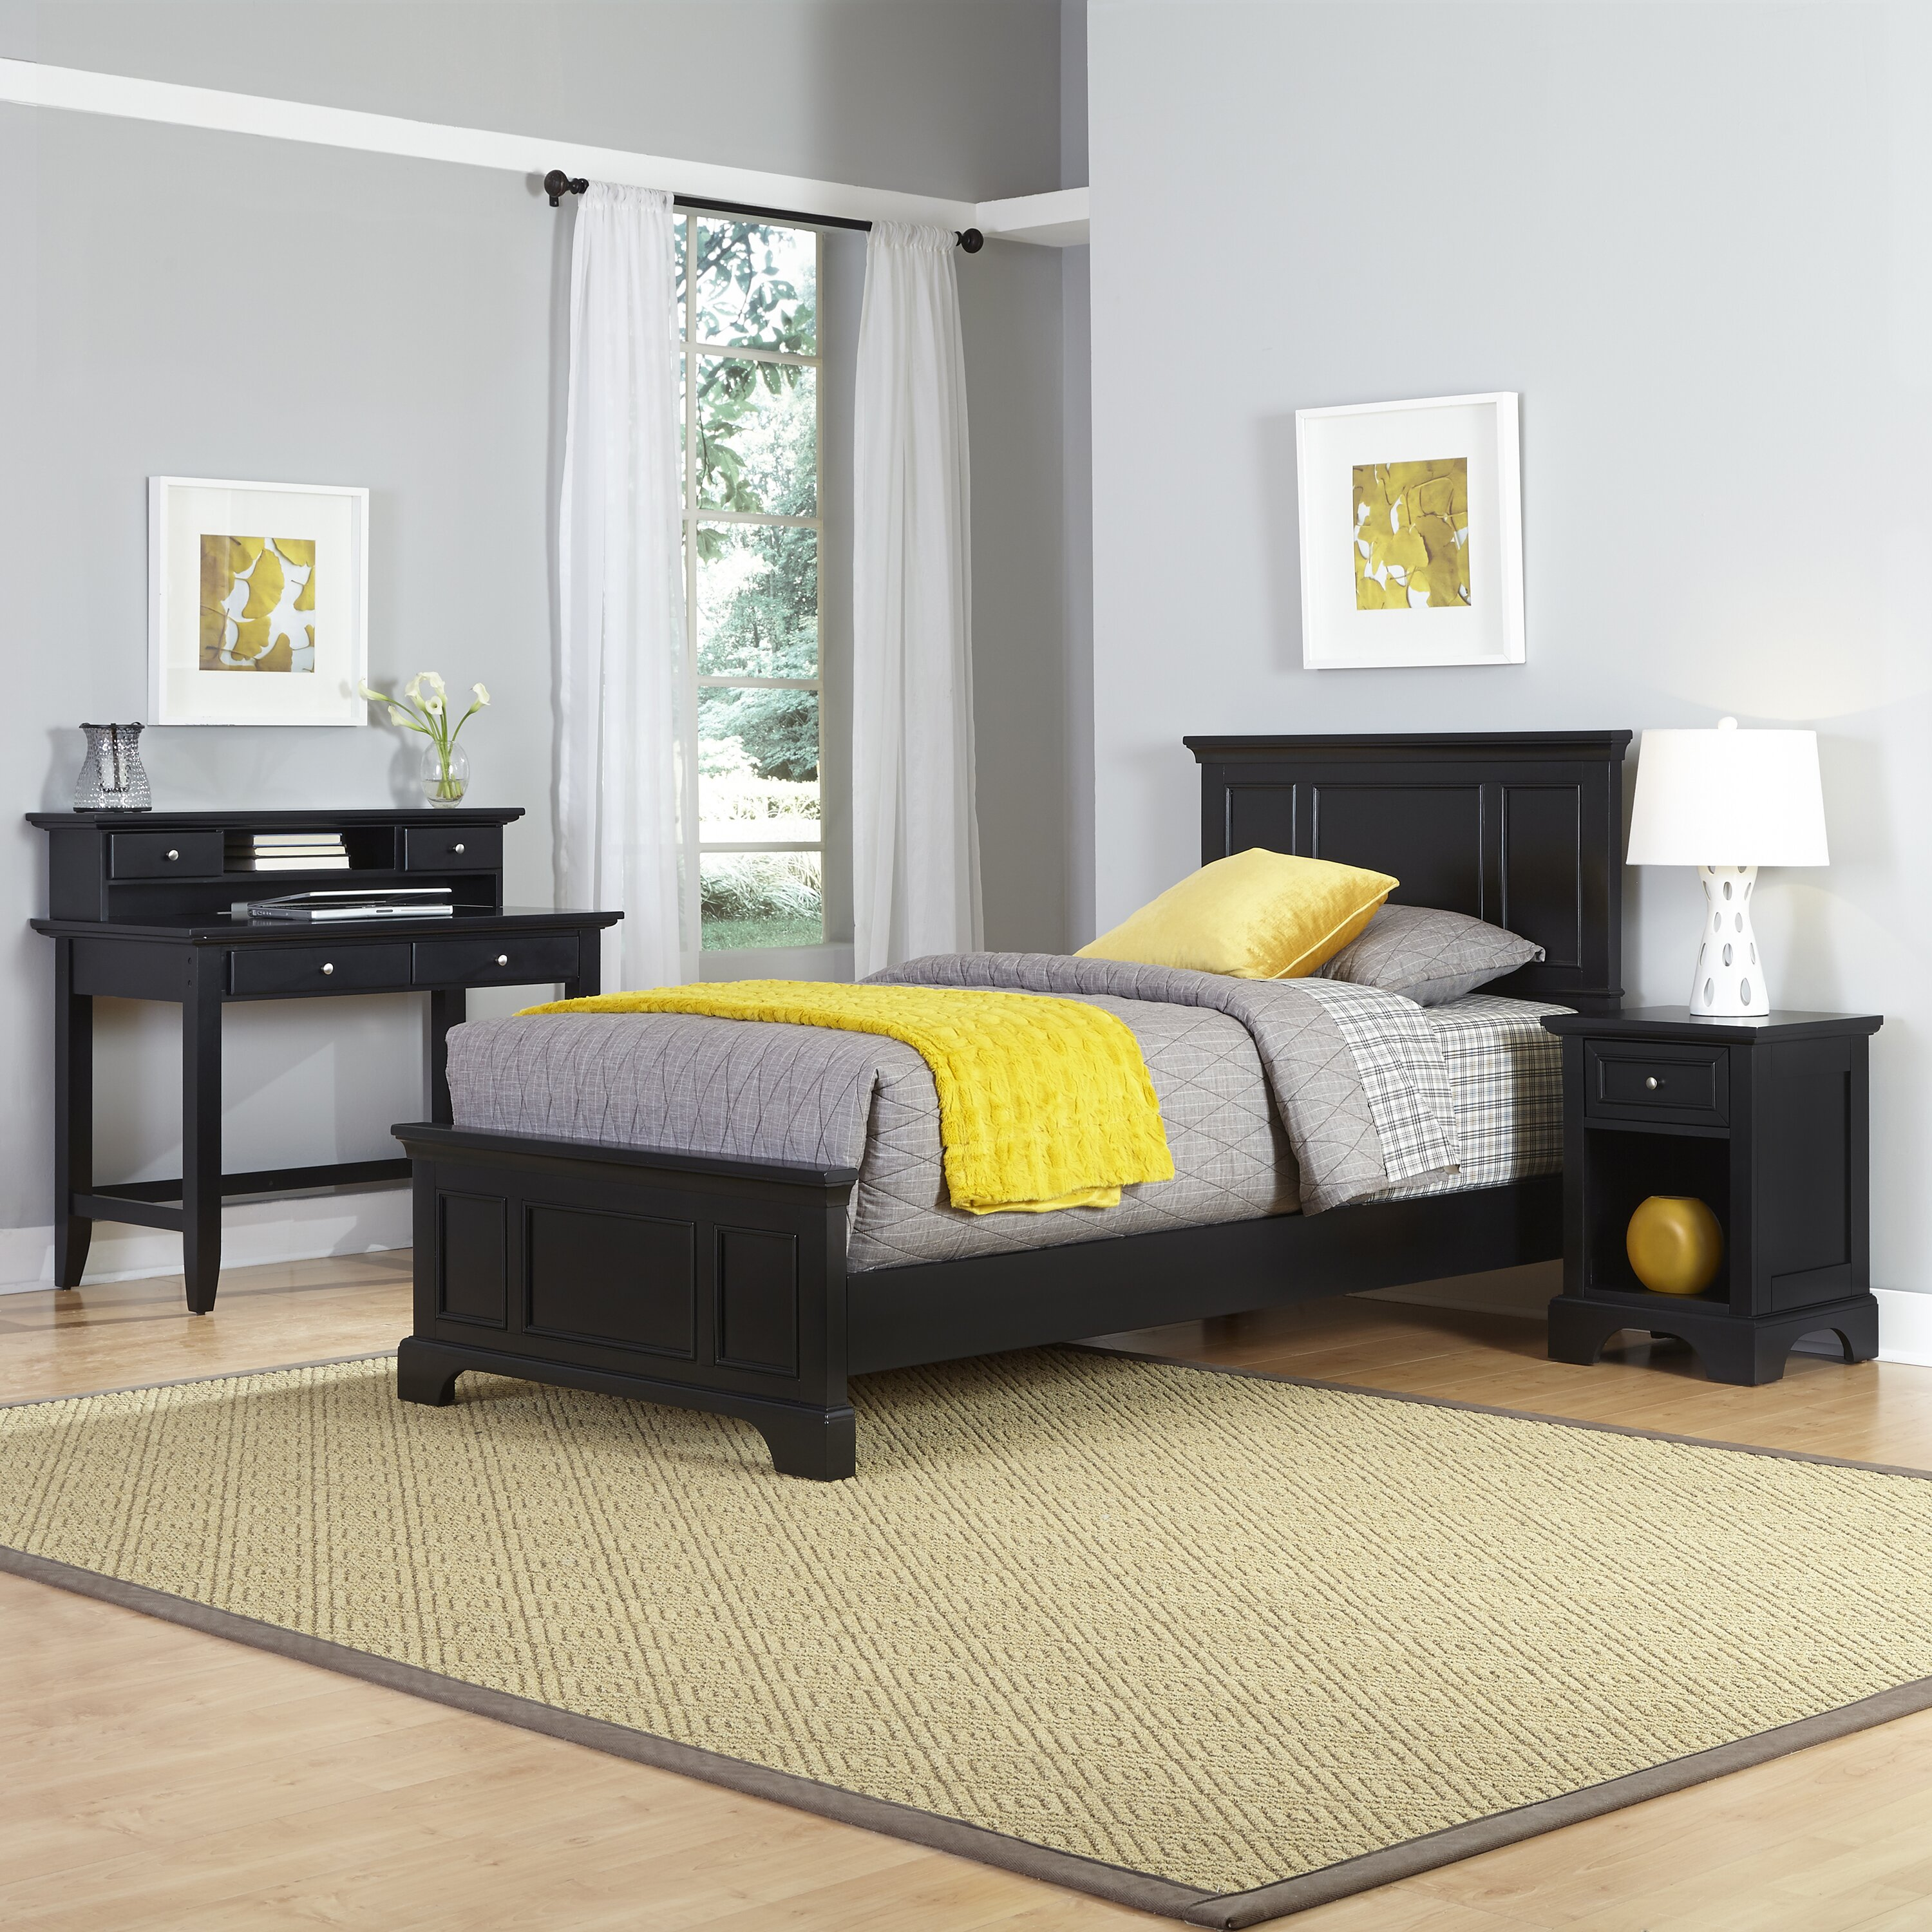 Home Styles Bedford Panel 4 Piece Bedroom Set